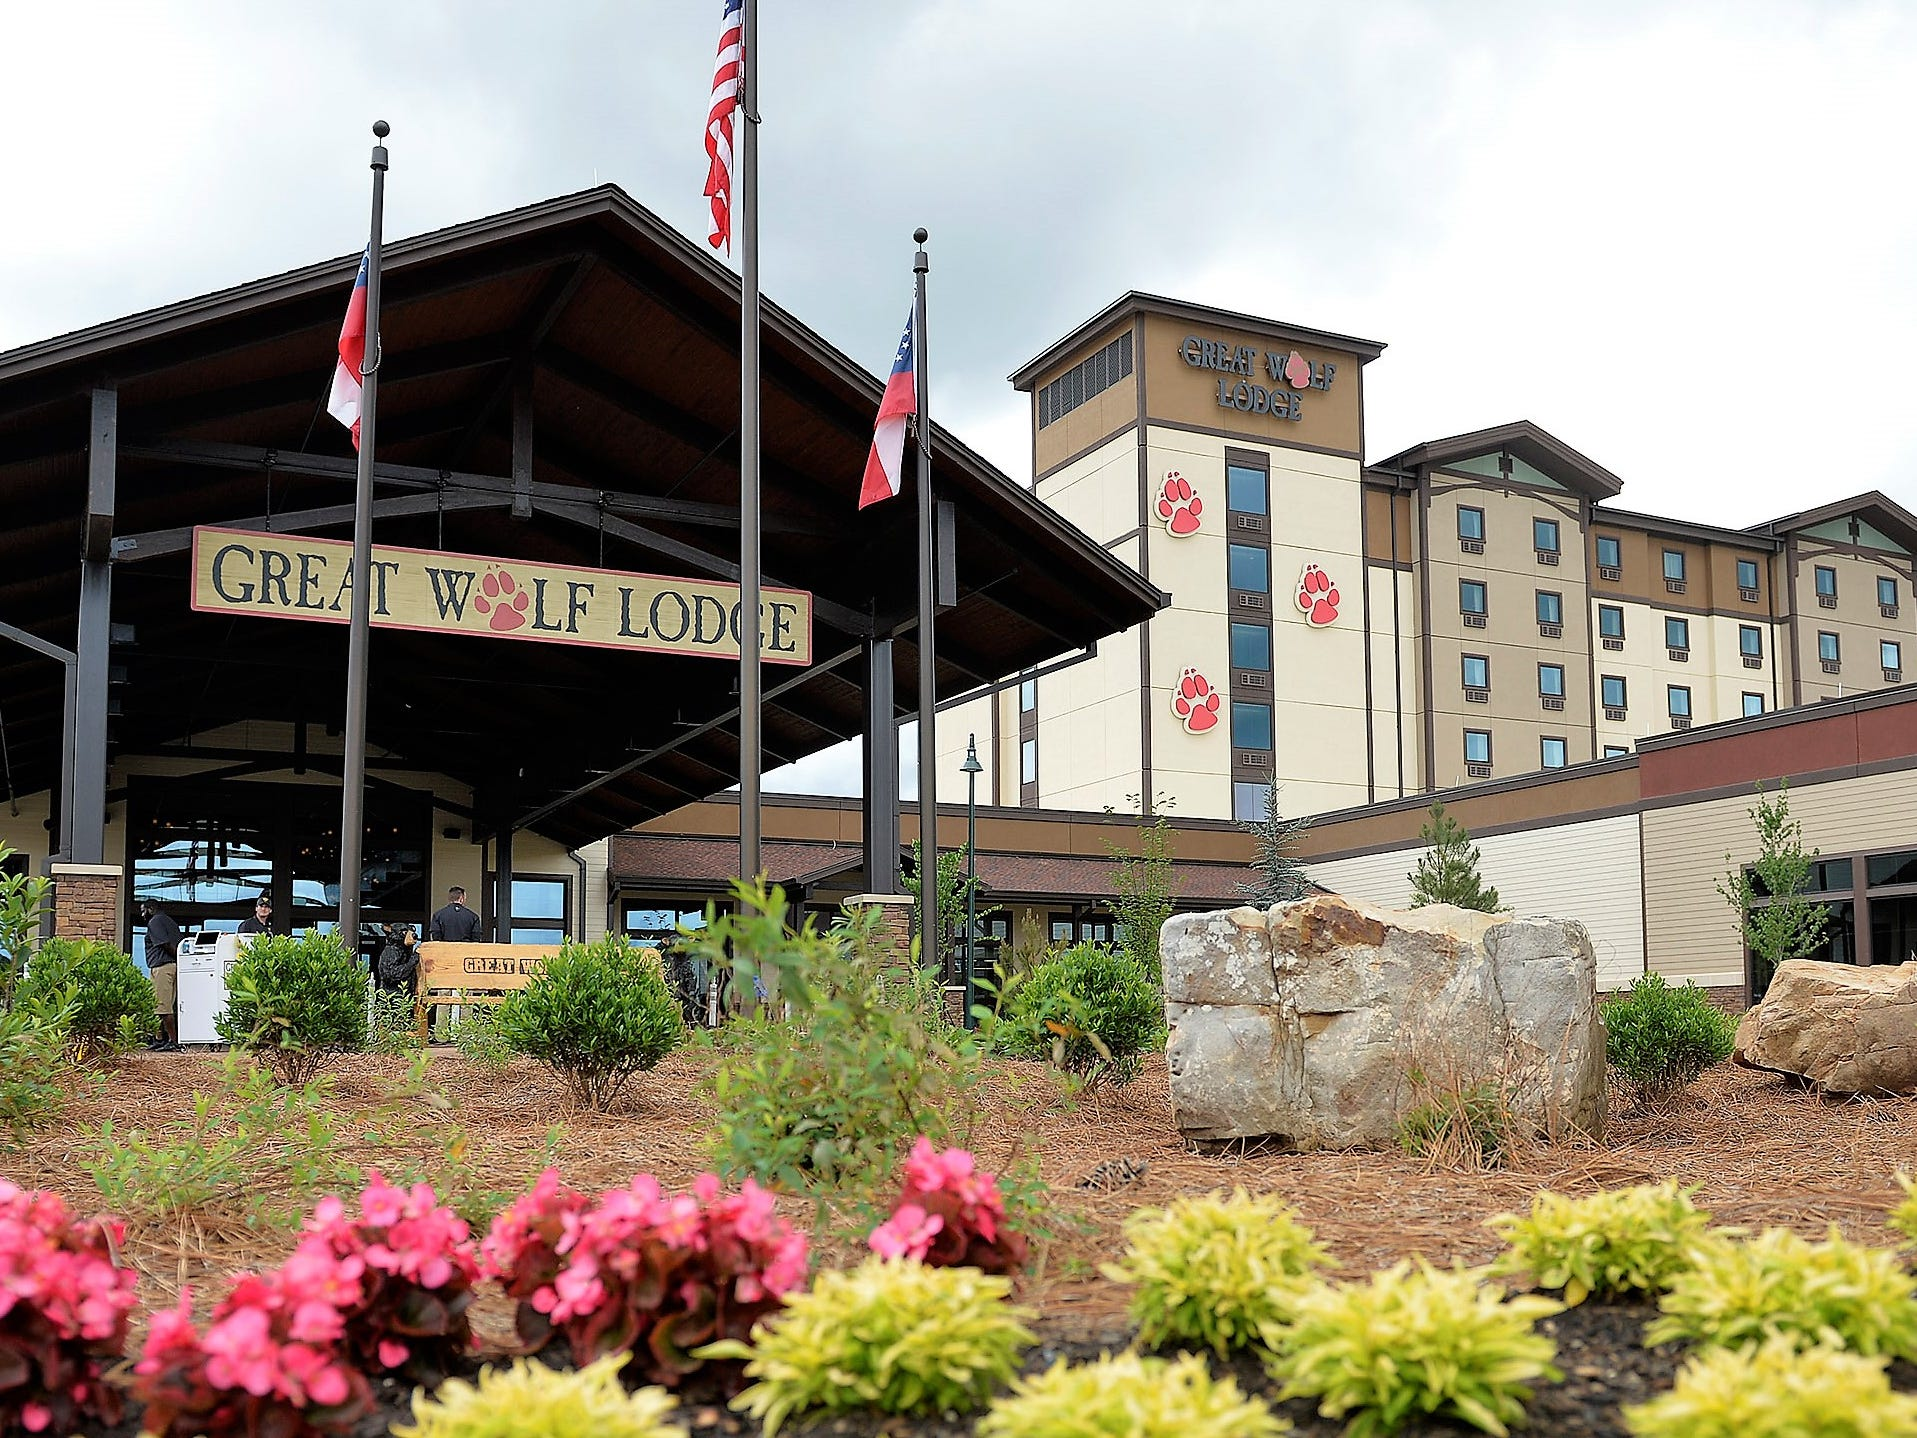 City proposes huge subsidies, land trade with Paul Foster for Great Wolf Lodge resort